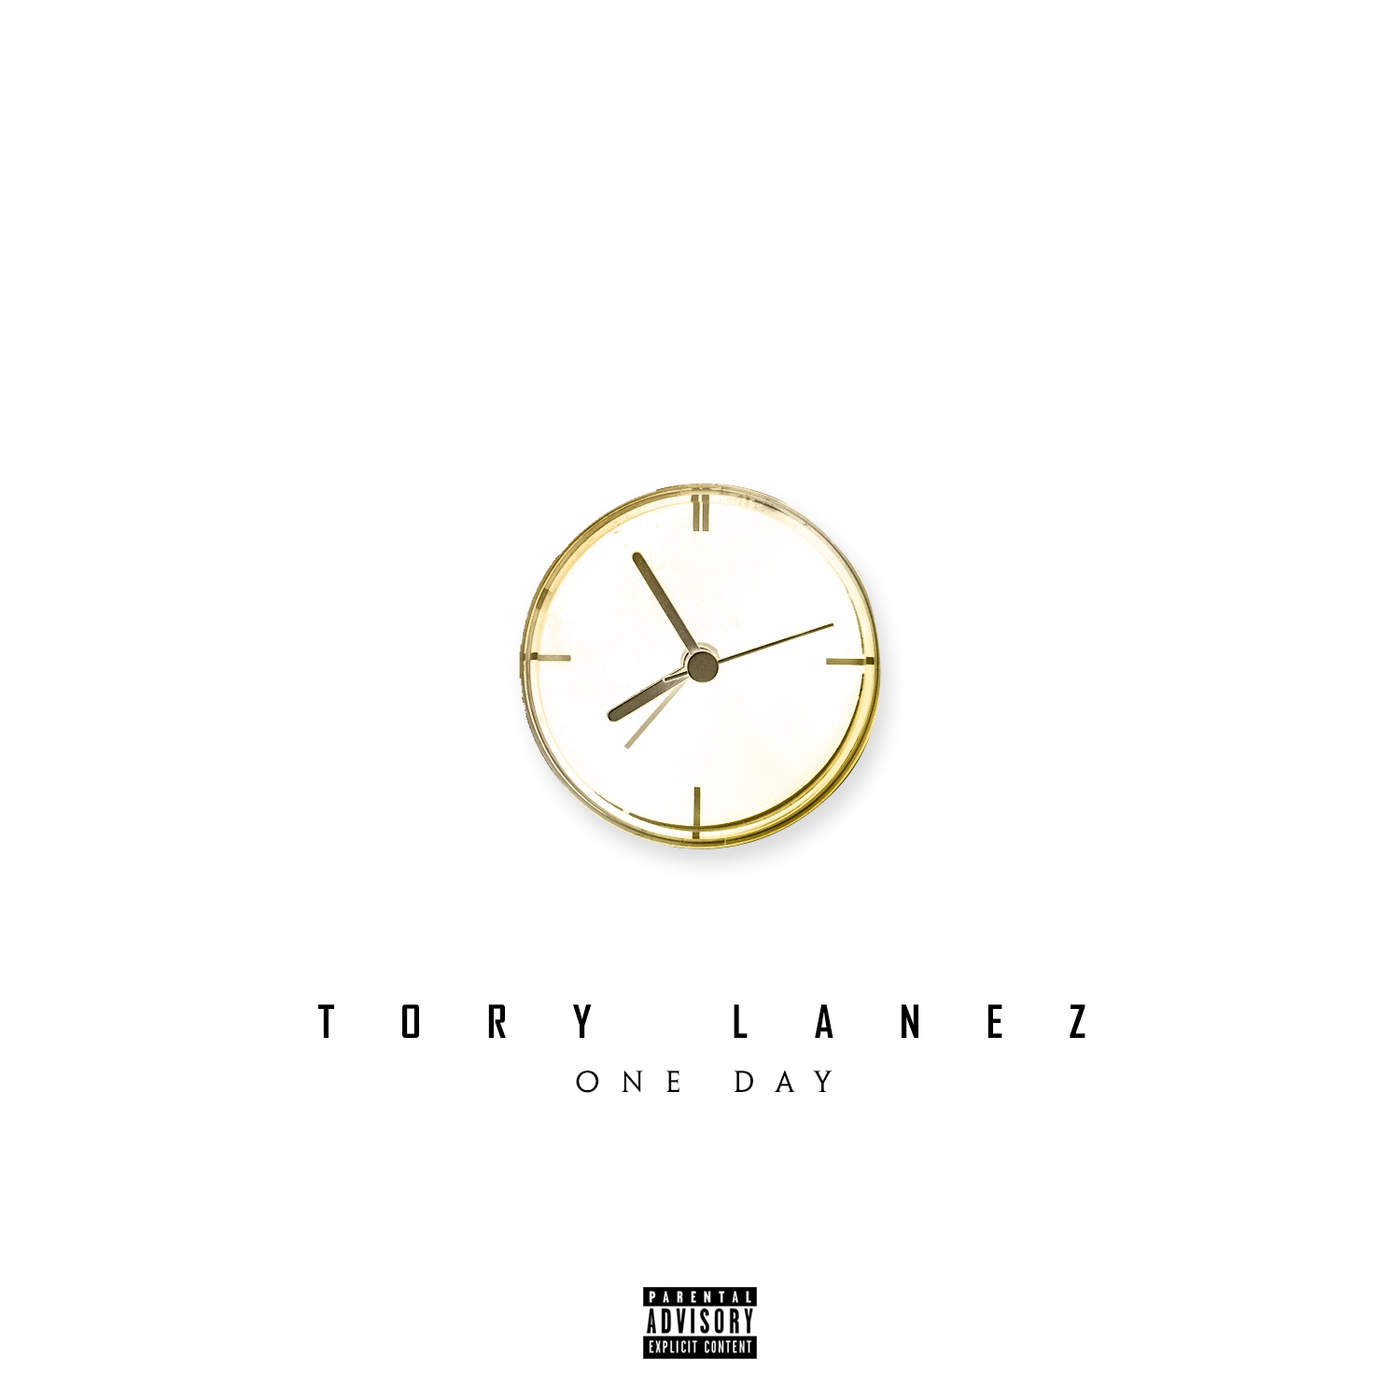 Tory Lanez - One Day - Single Cover